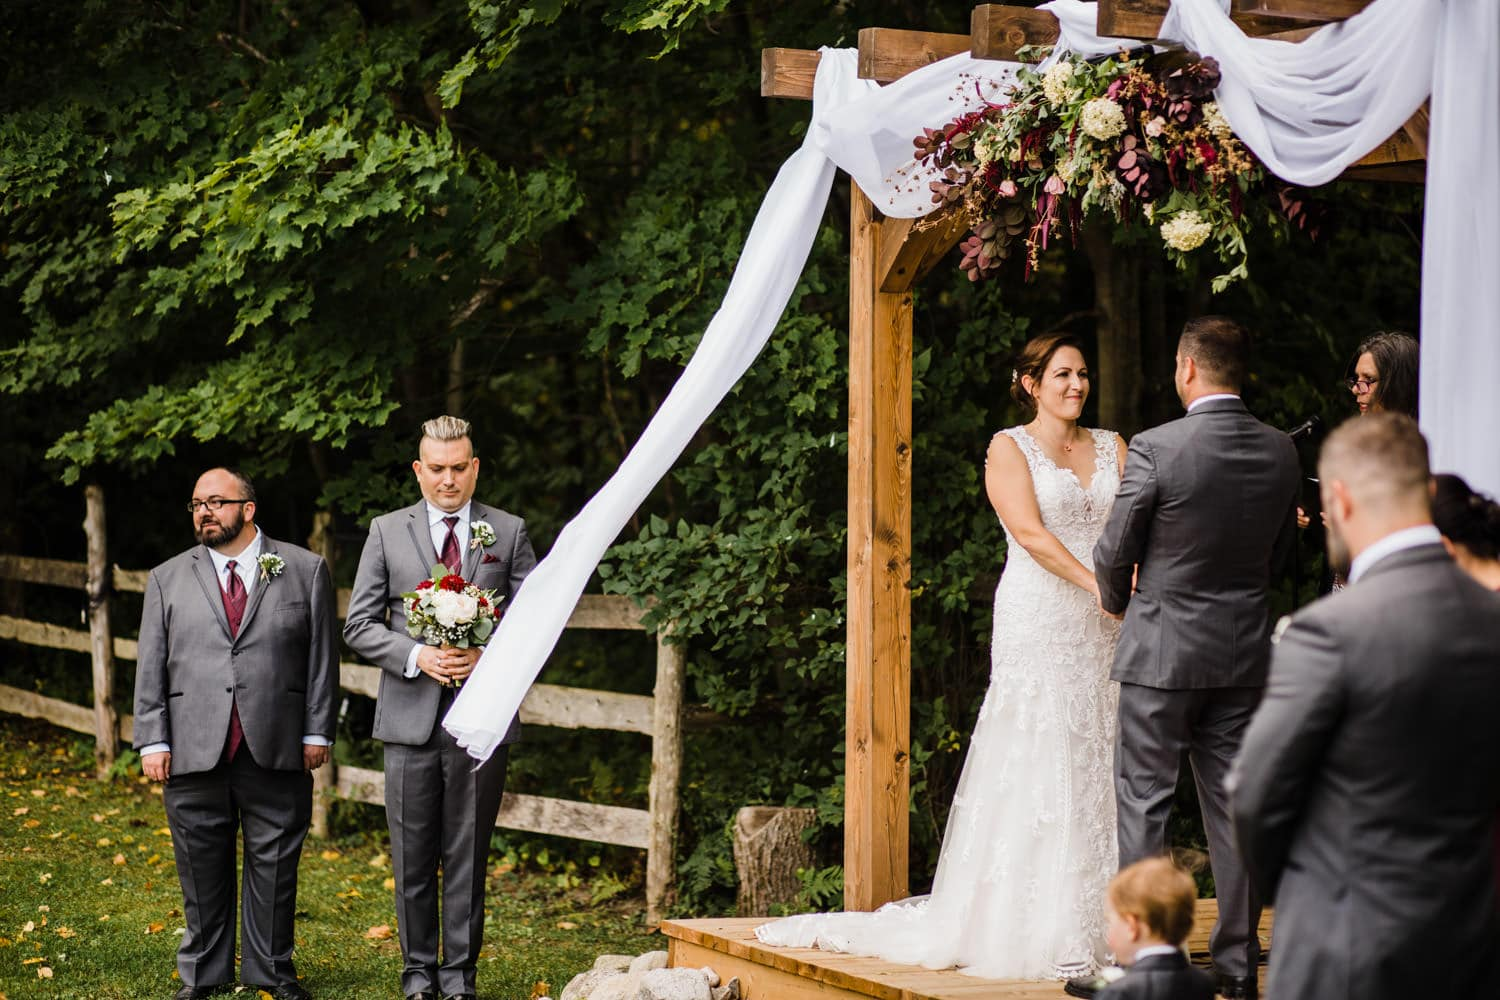 wind blows as couple exchanges their vows - outdoor wedding ceremony ottawa